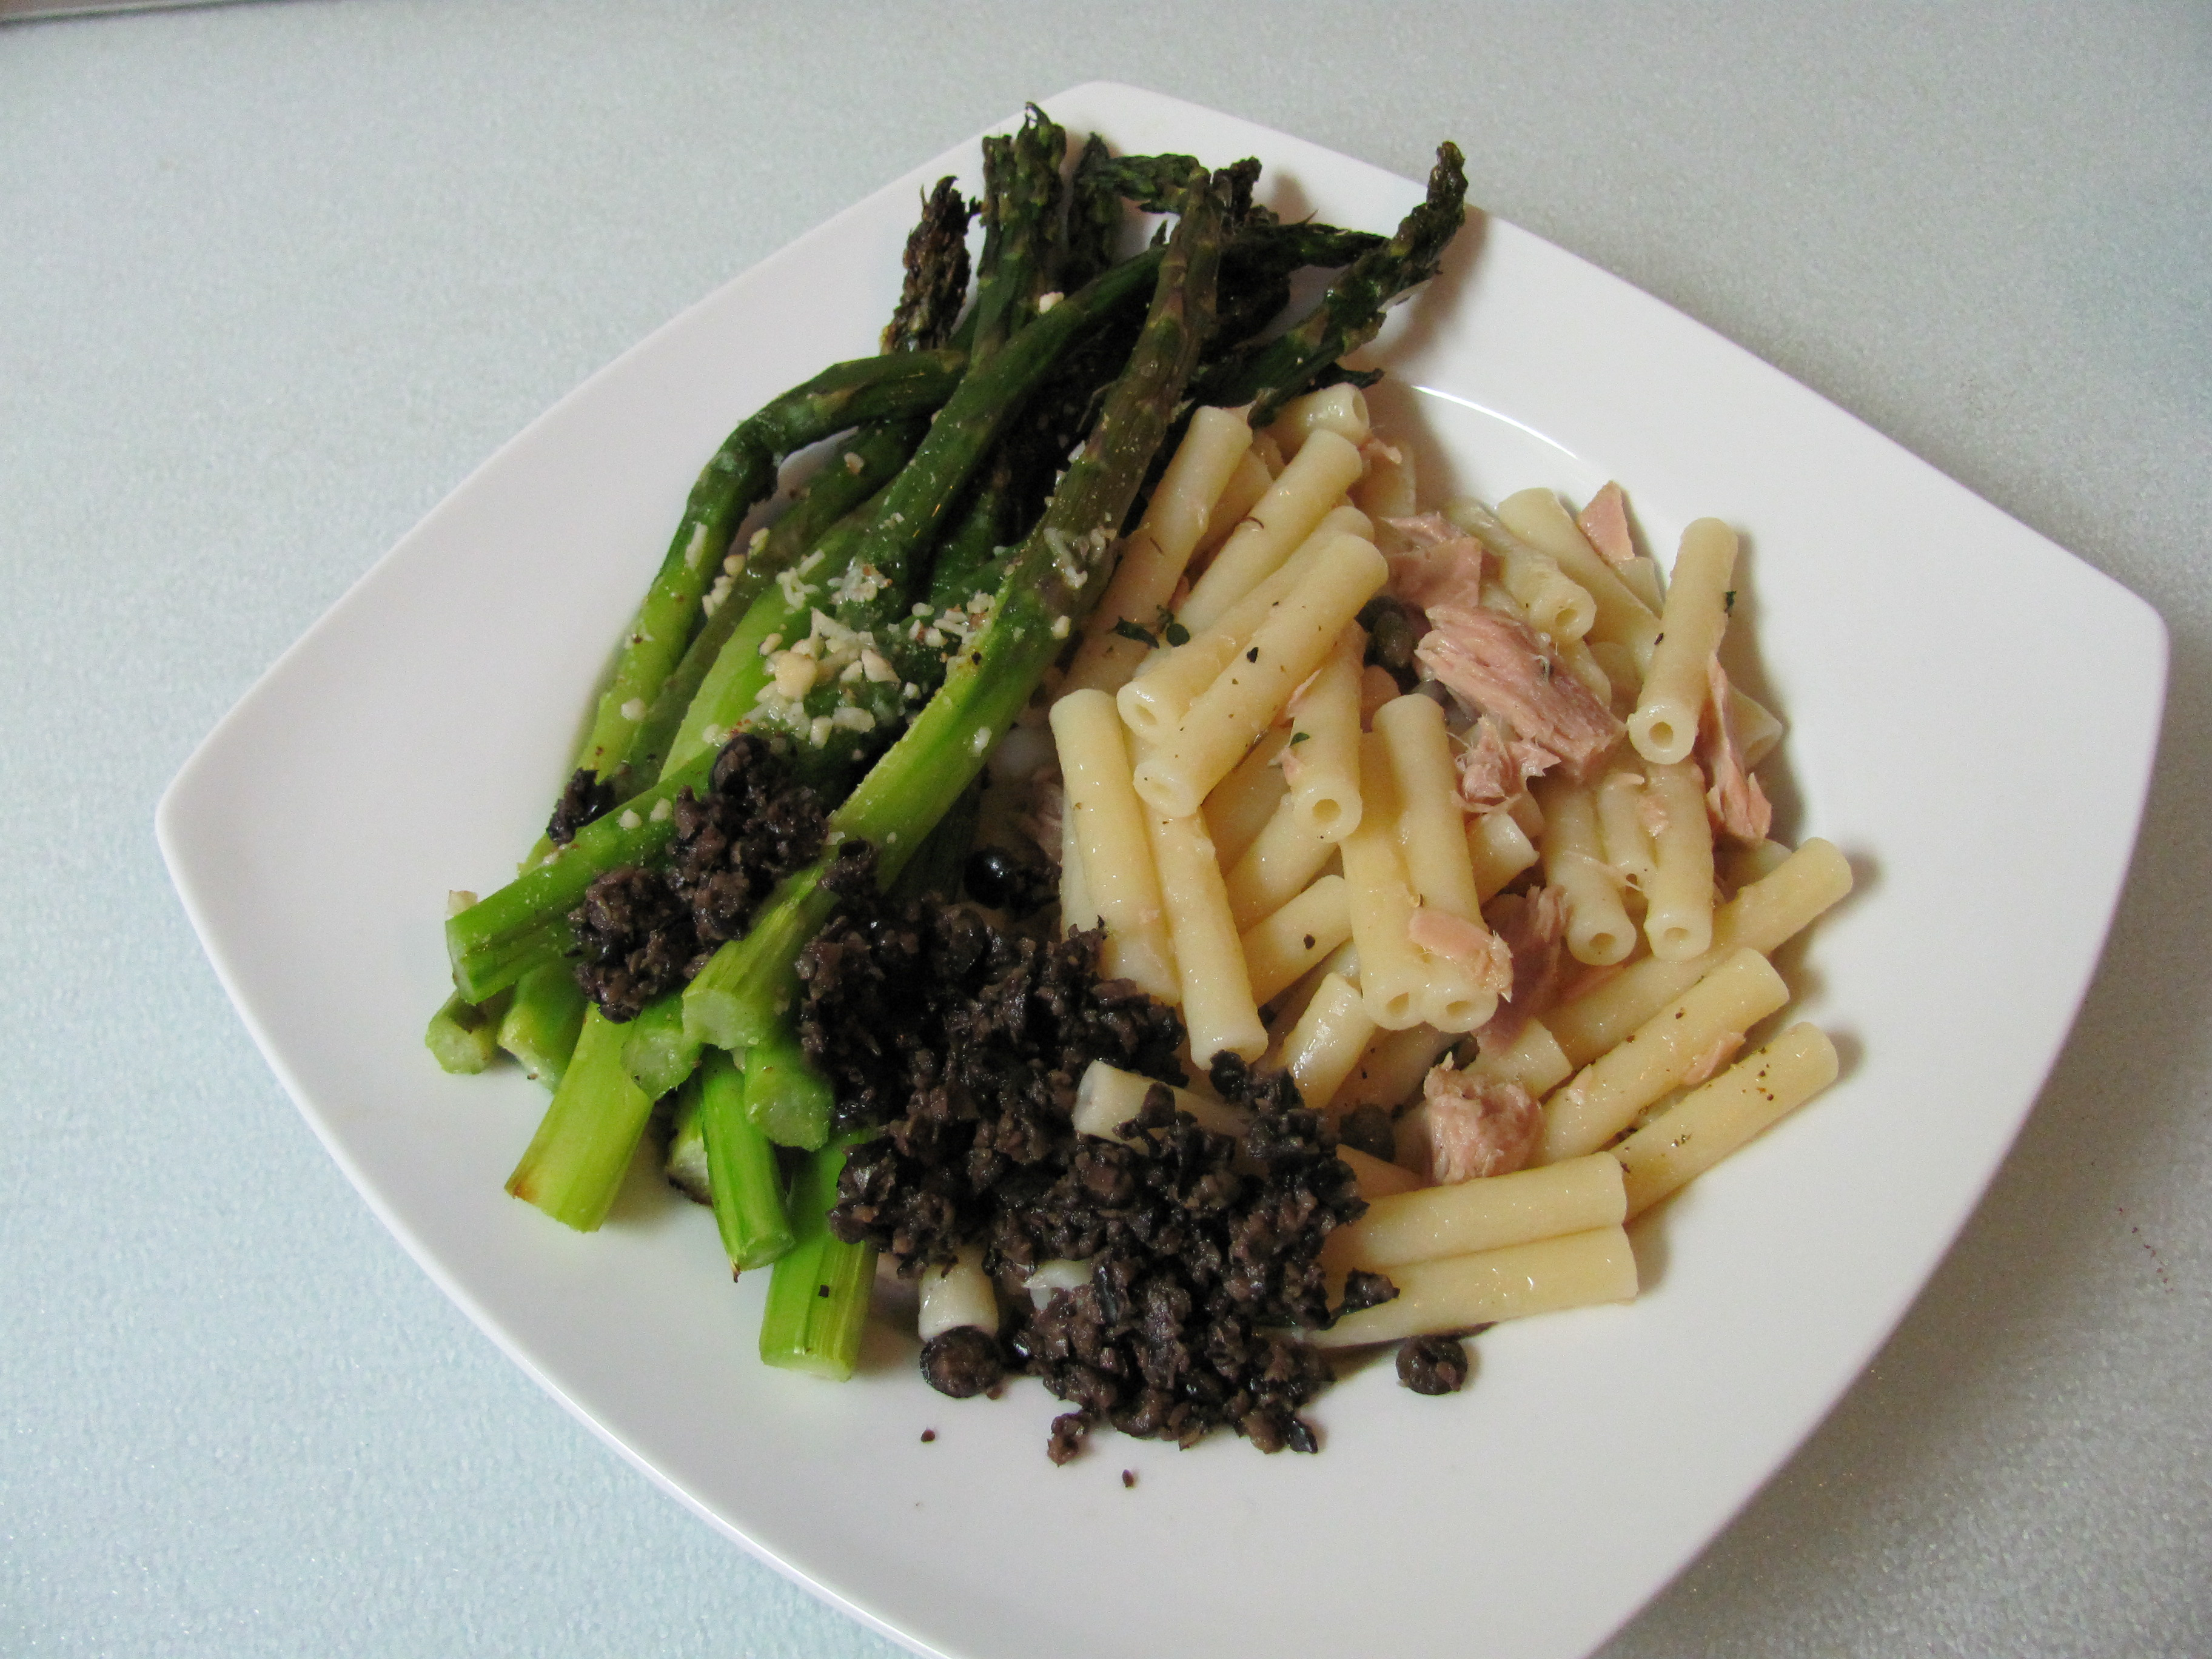 Pasta with tuna and roasted asparagus